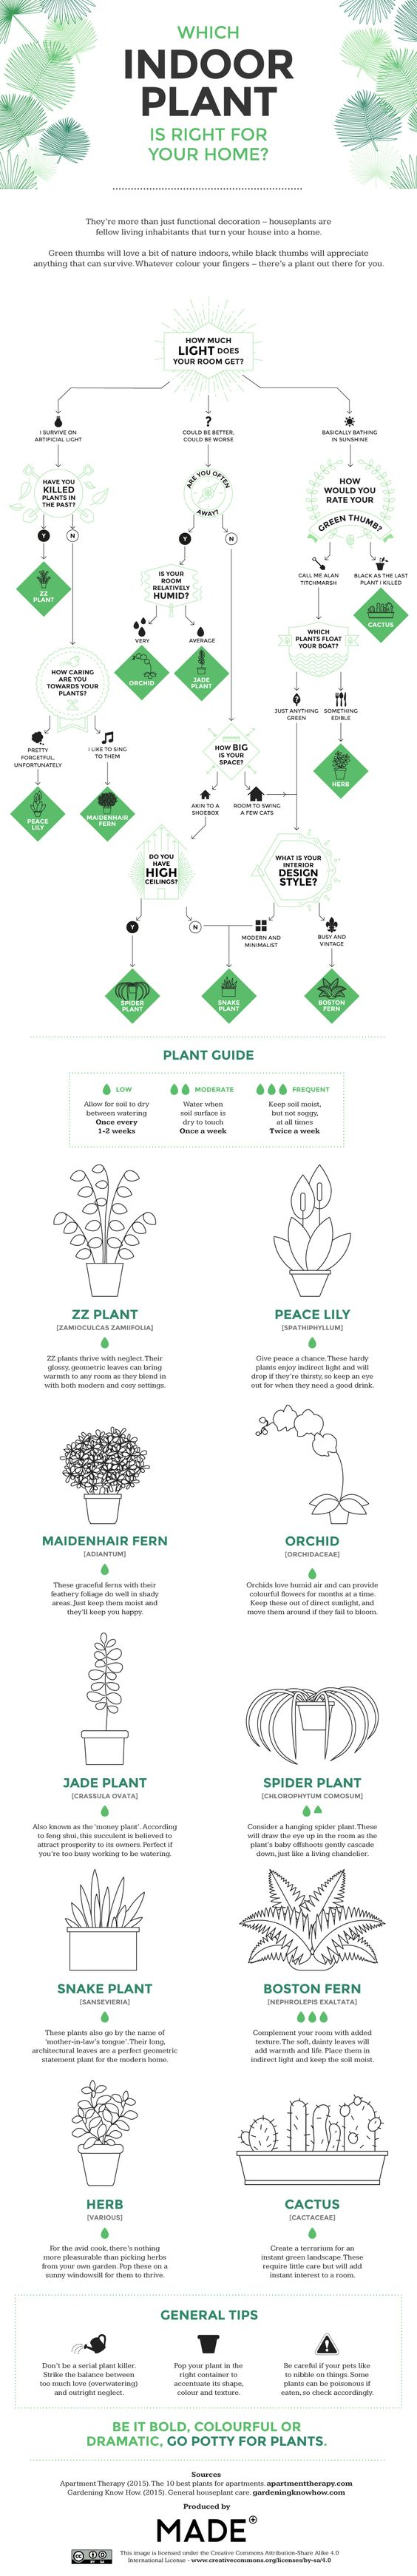 Which Indoor Plant is Right for Your Home Infographic